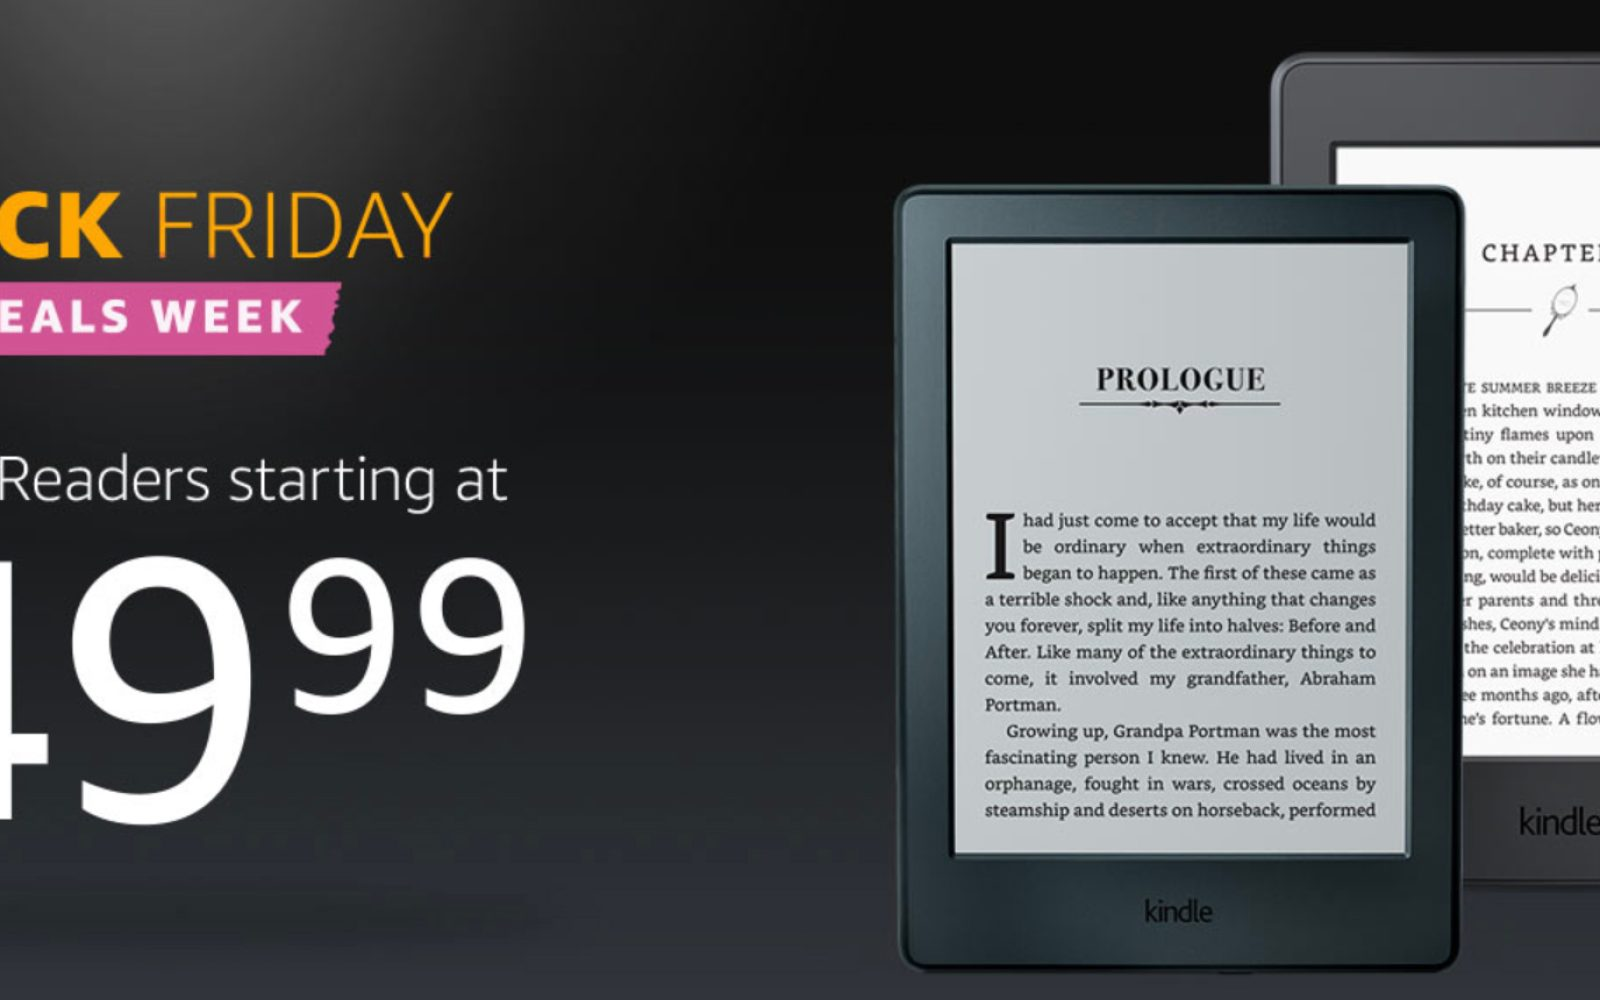 Amazon kicks off its Kindle E-reader Black Friday promotion